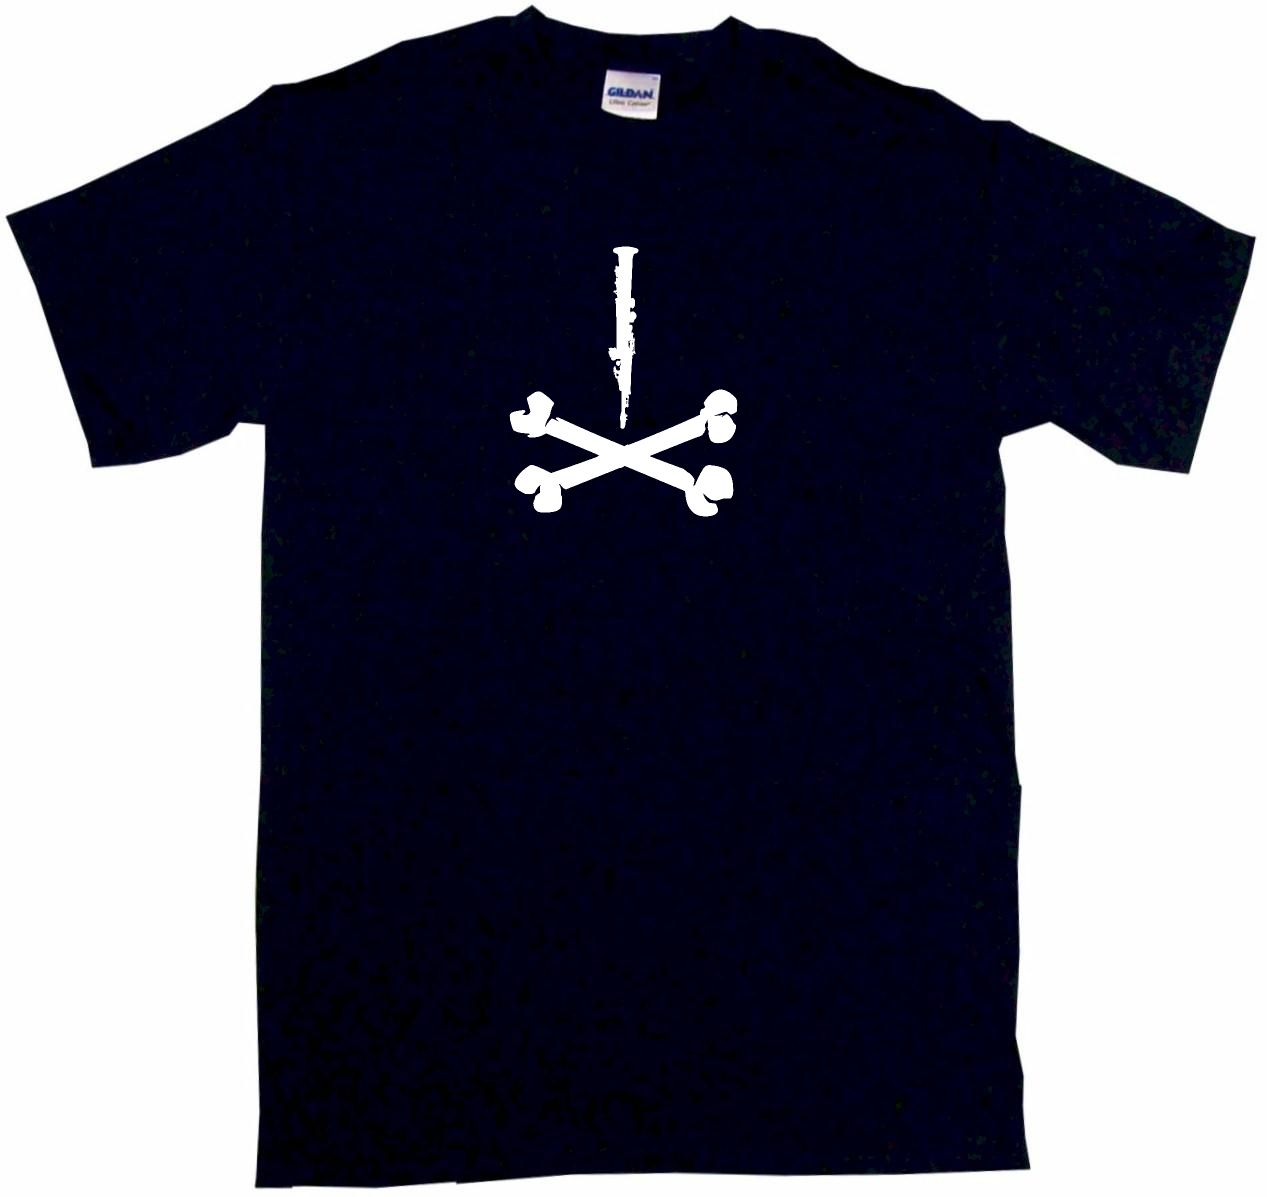 1267x1197 Clarinet Silhouette Pirate Skull Cross Bones Logo Mens Tee Shirt